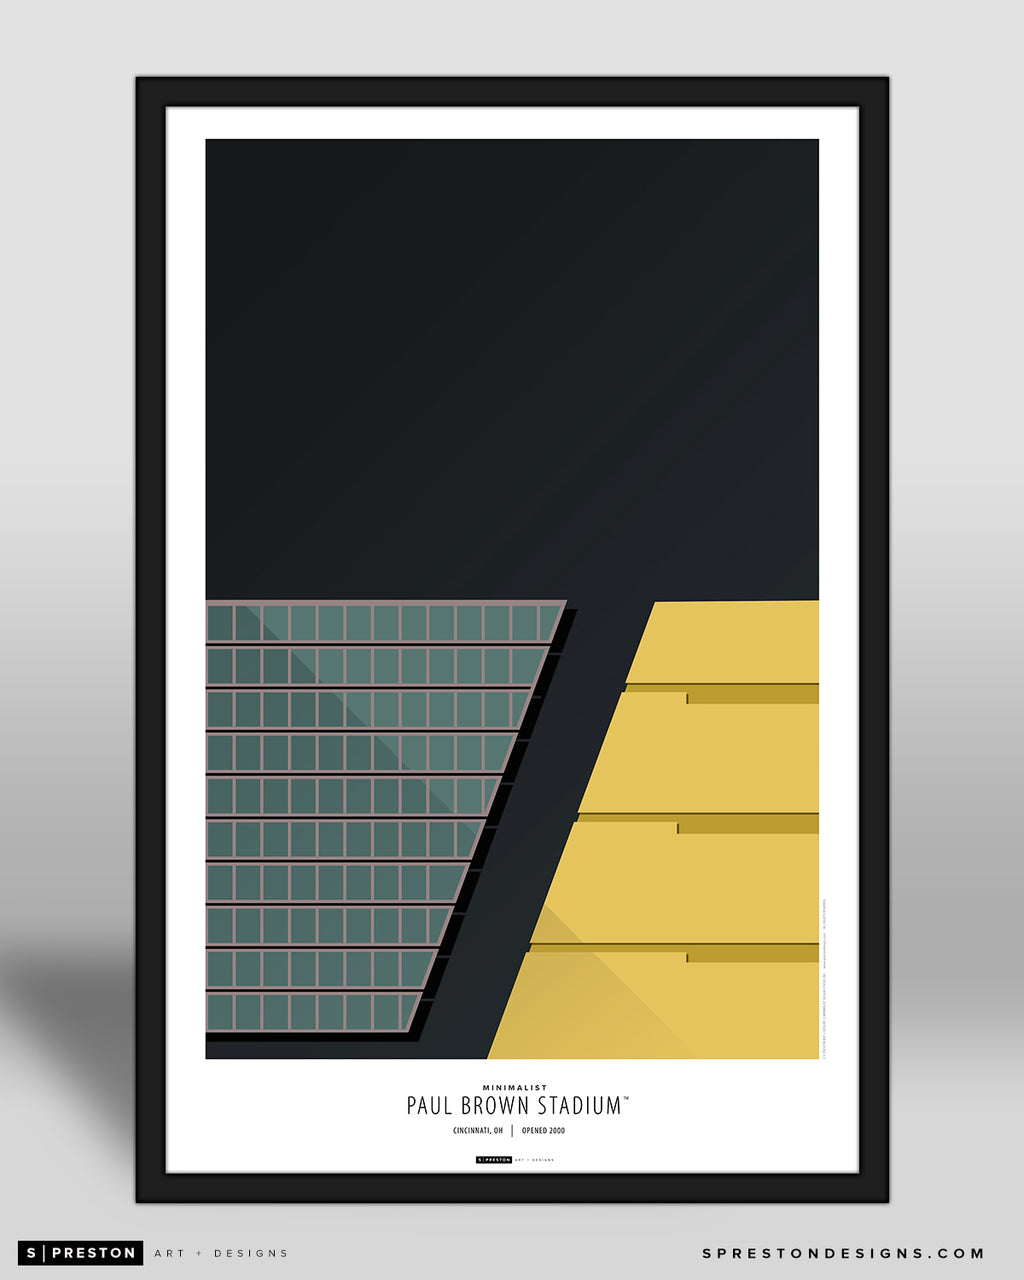 Minimalist Paul Brown Stadium Poster Print Cincinnati Bengals - S Preston